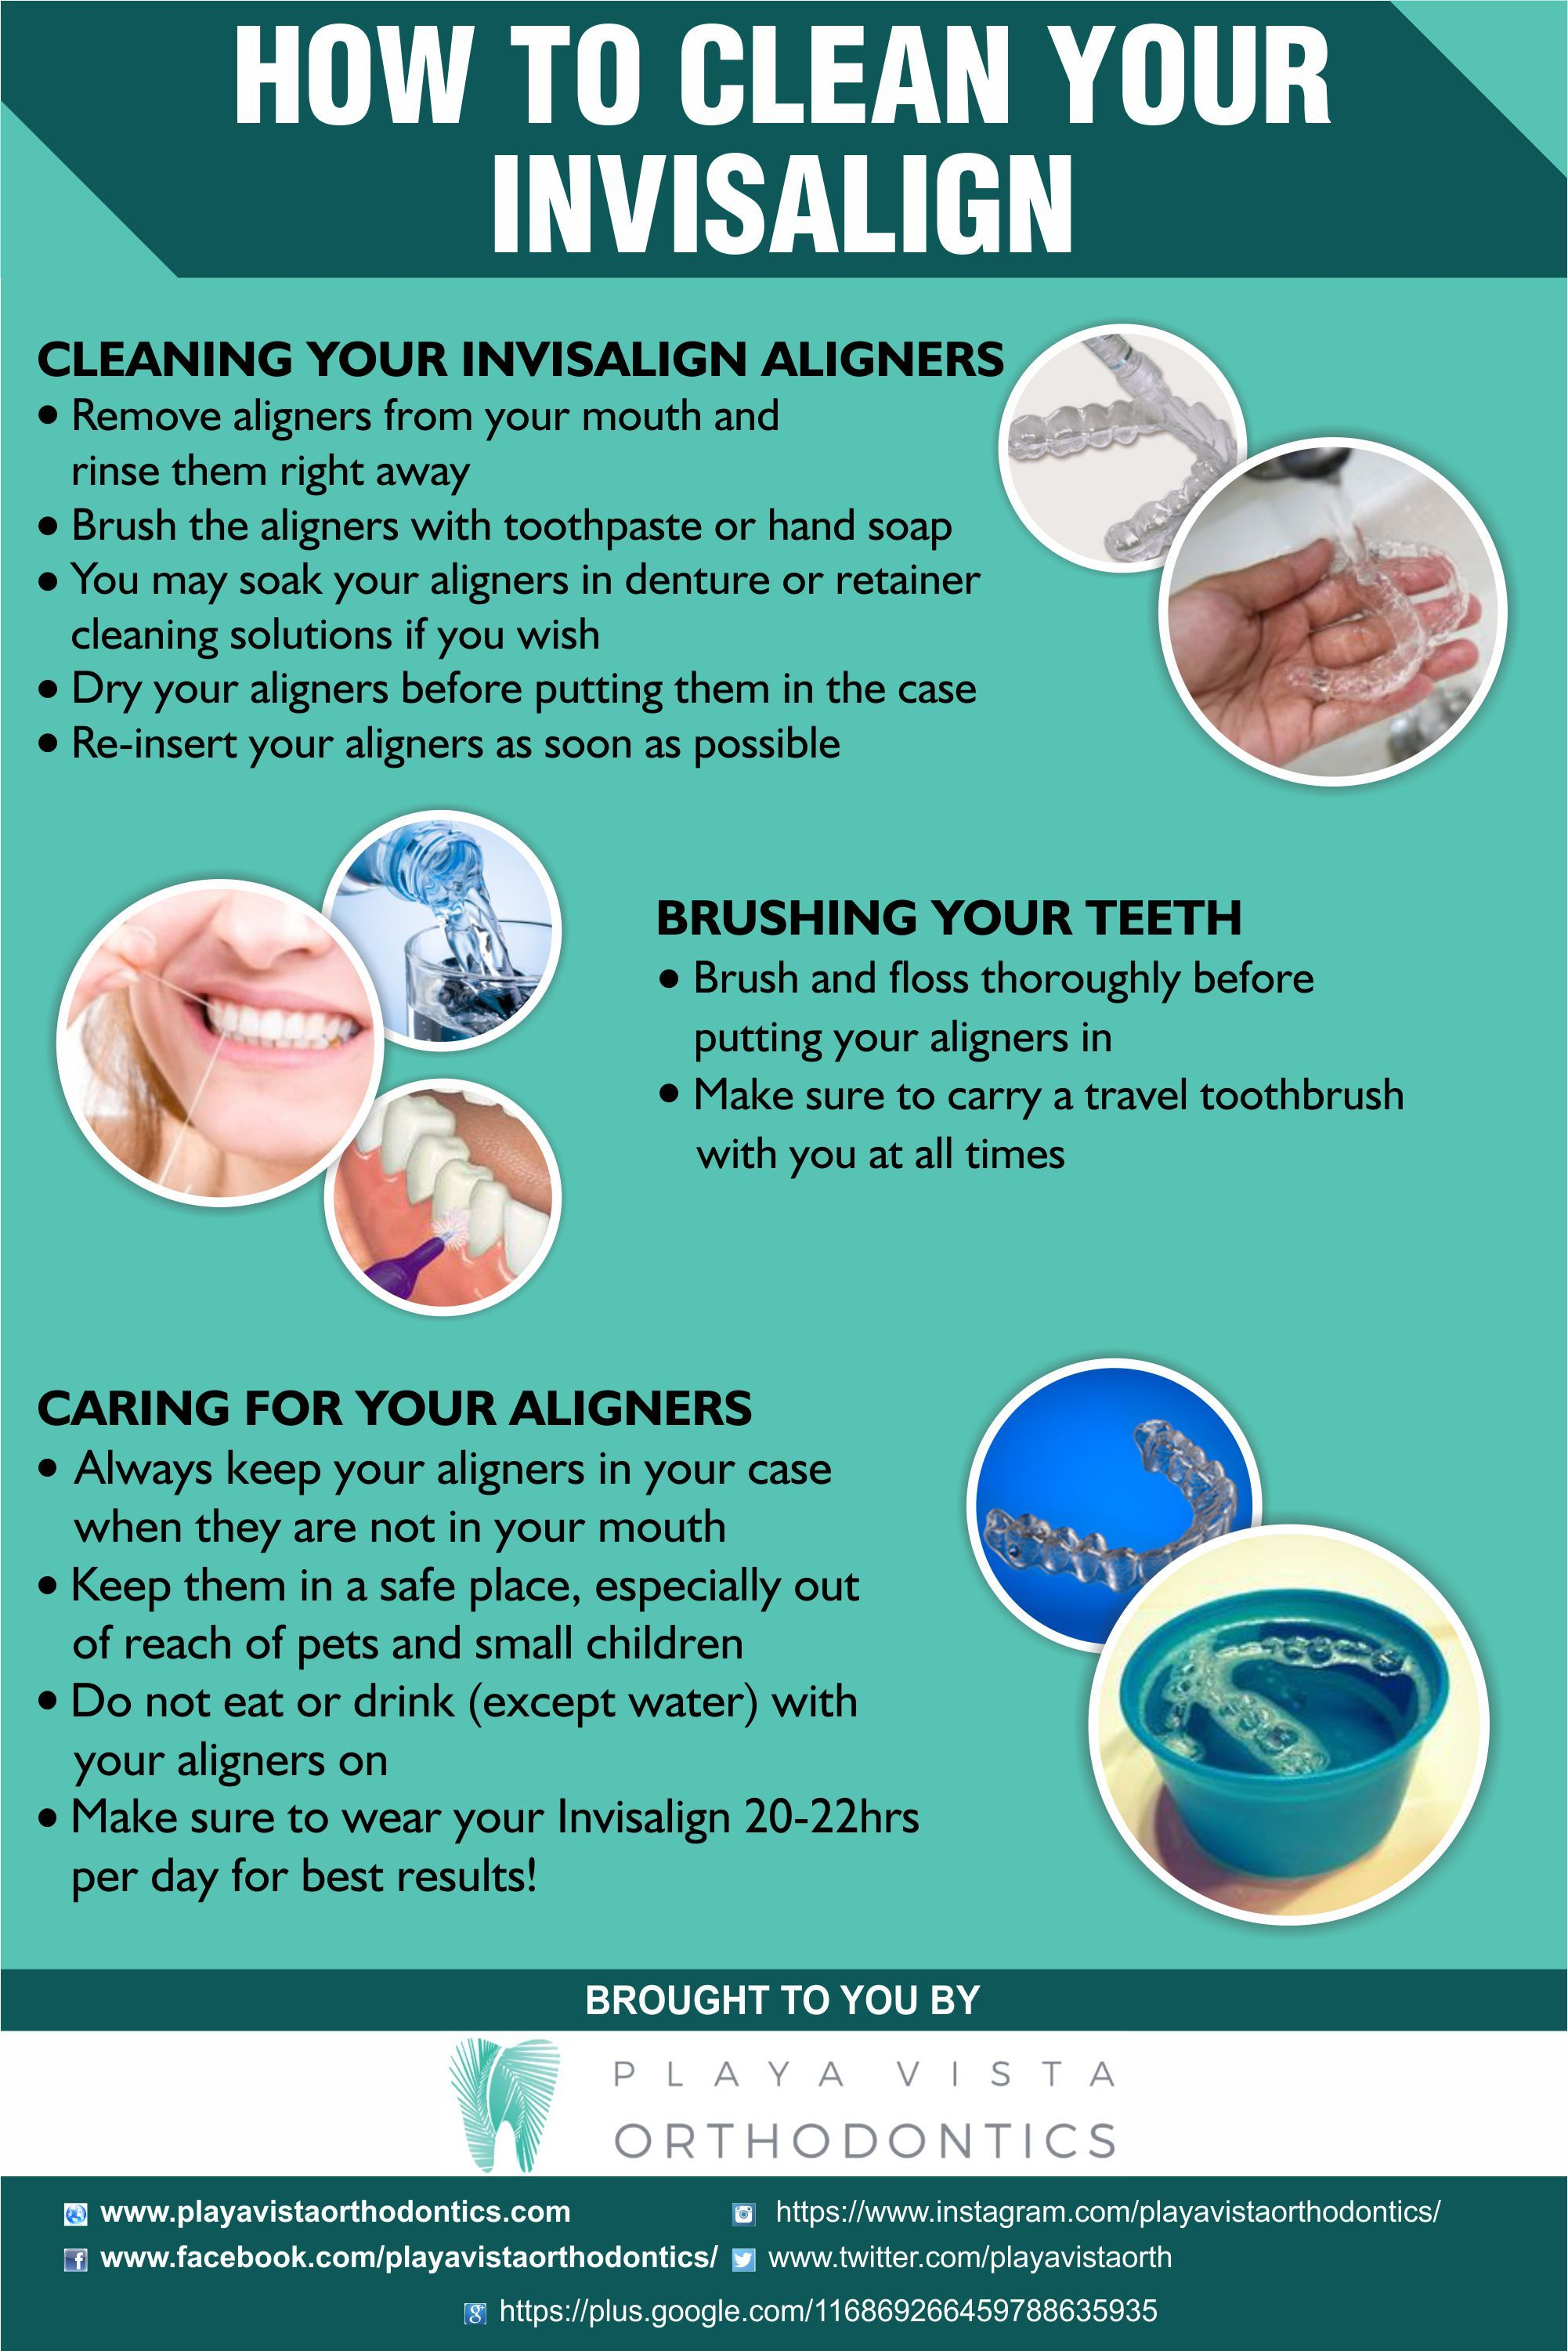 how to clean invisalign retainers with cleaning crystals